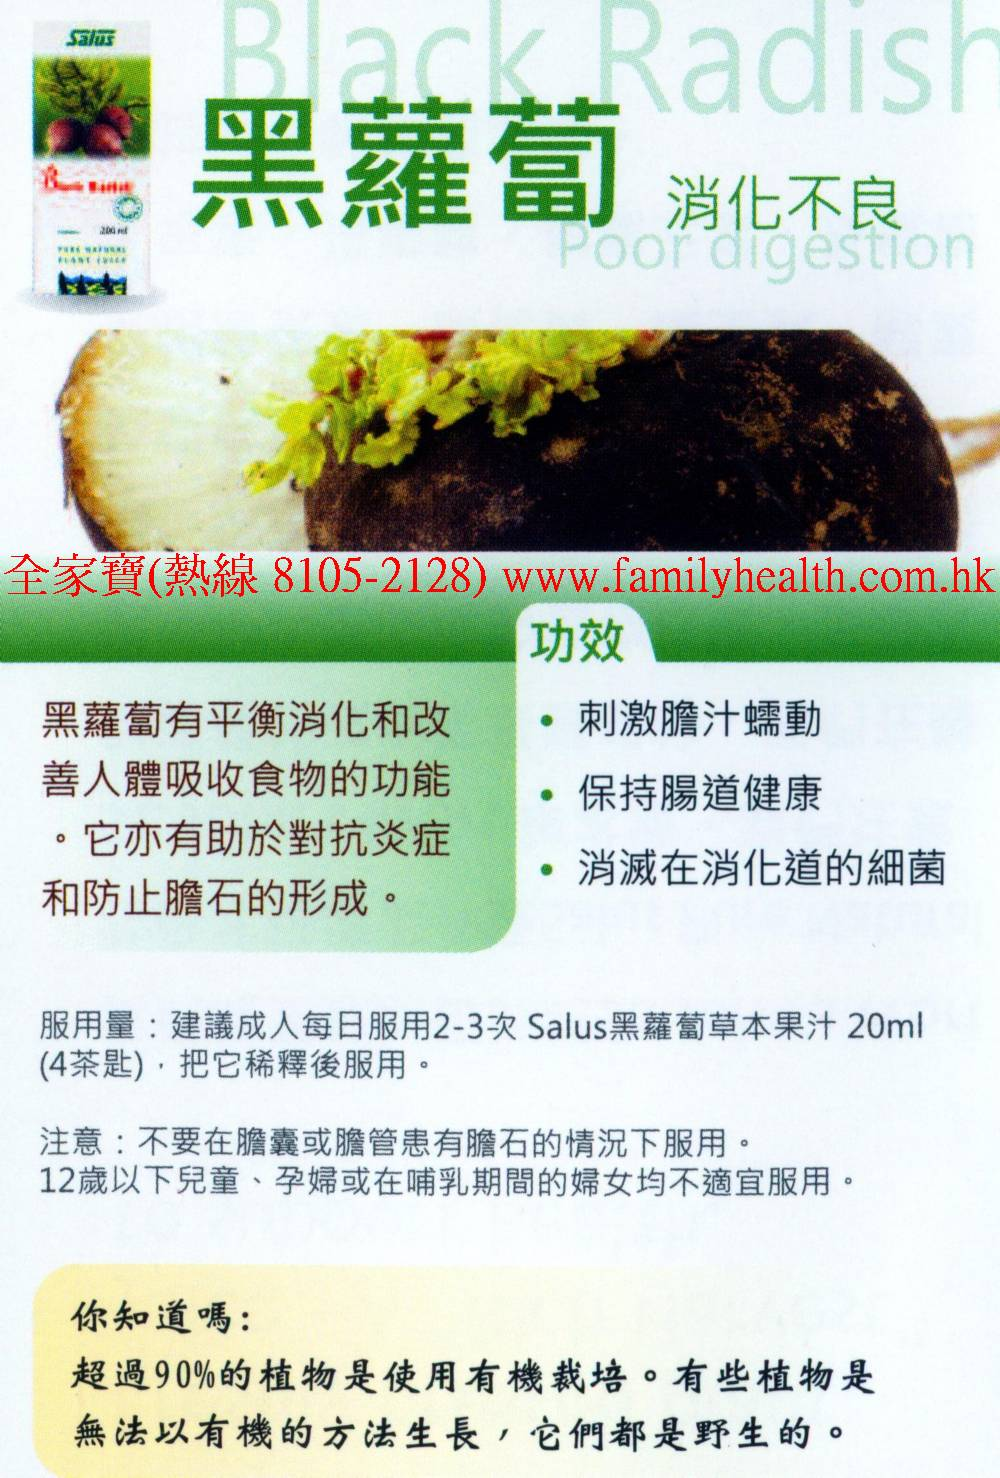 http://www.familyhealth.com.hk/files/full/195_1.jpg